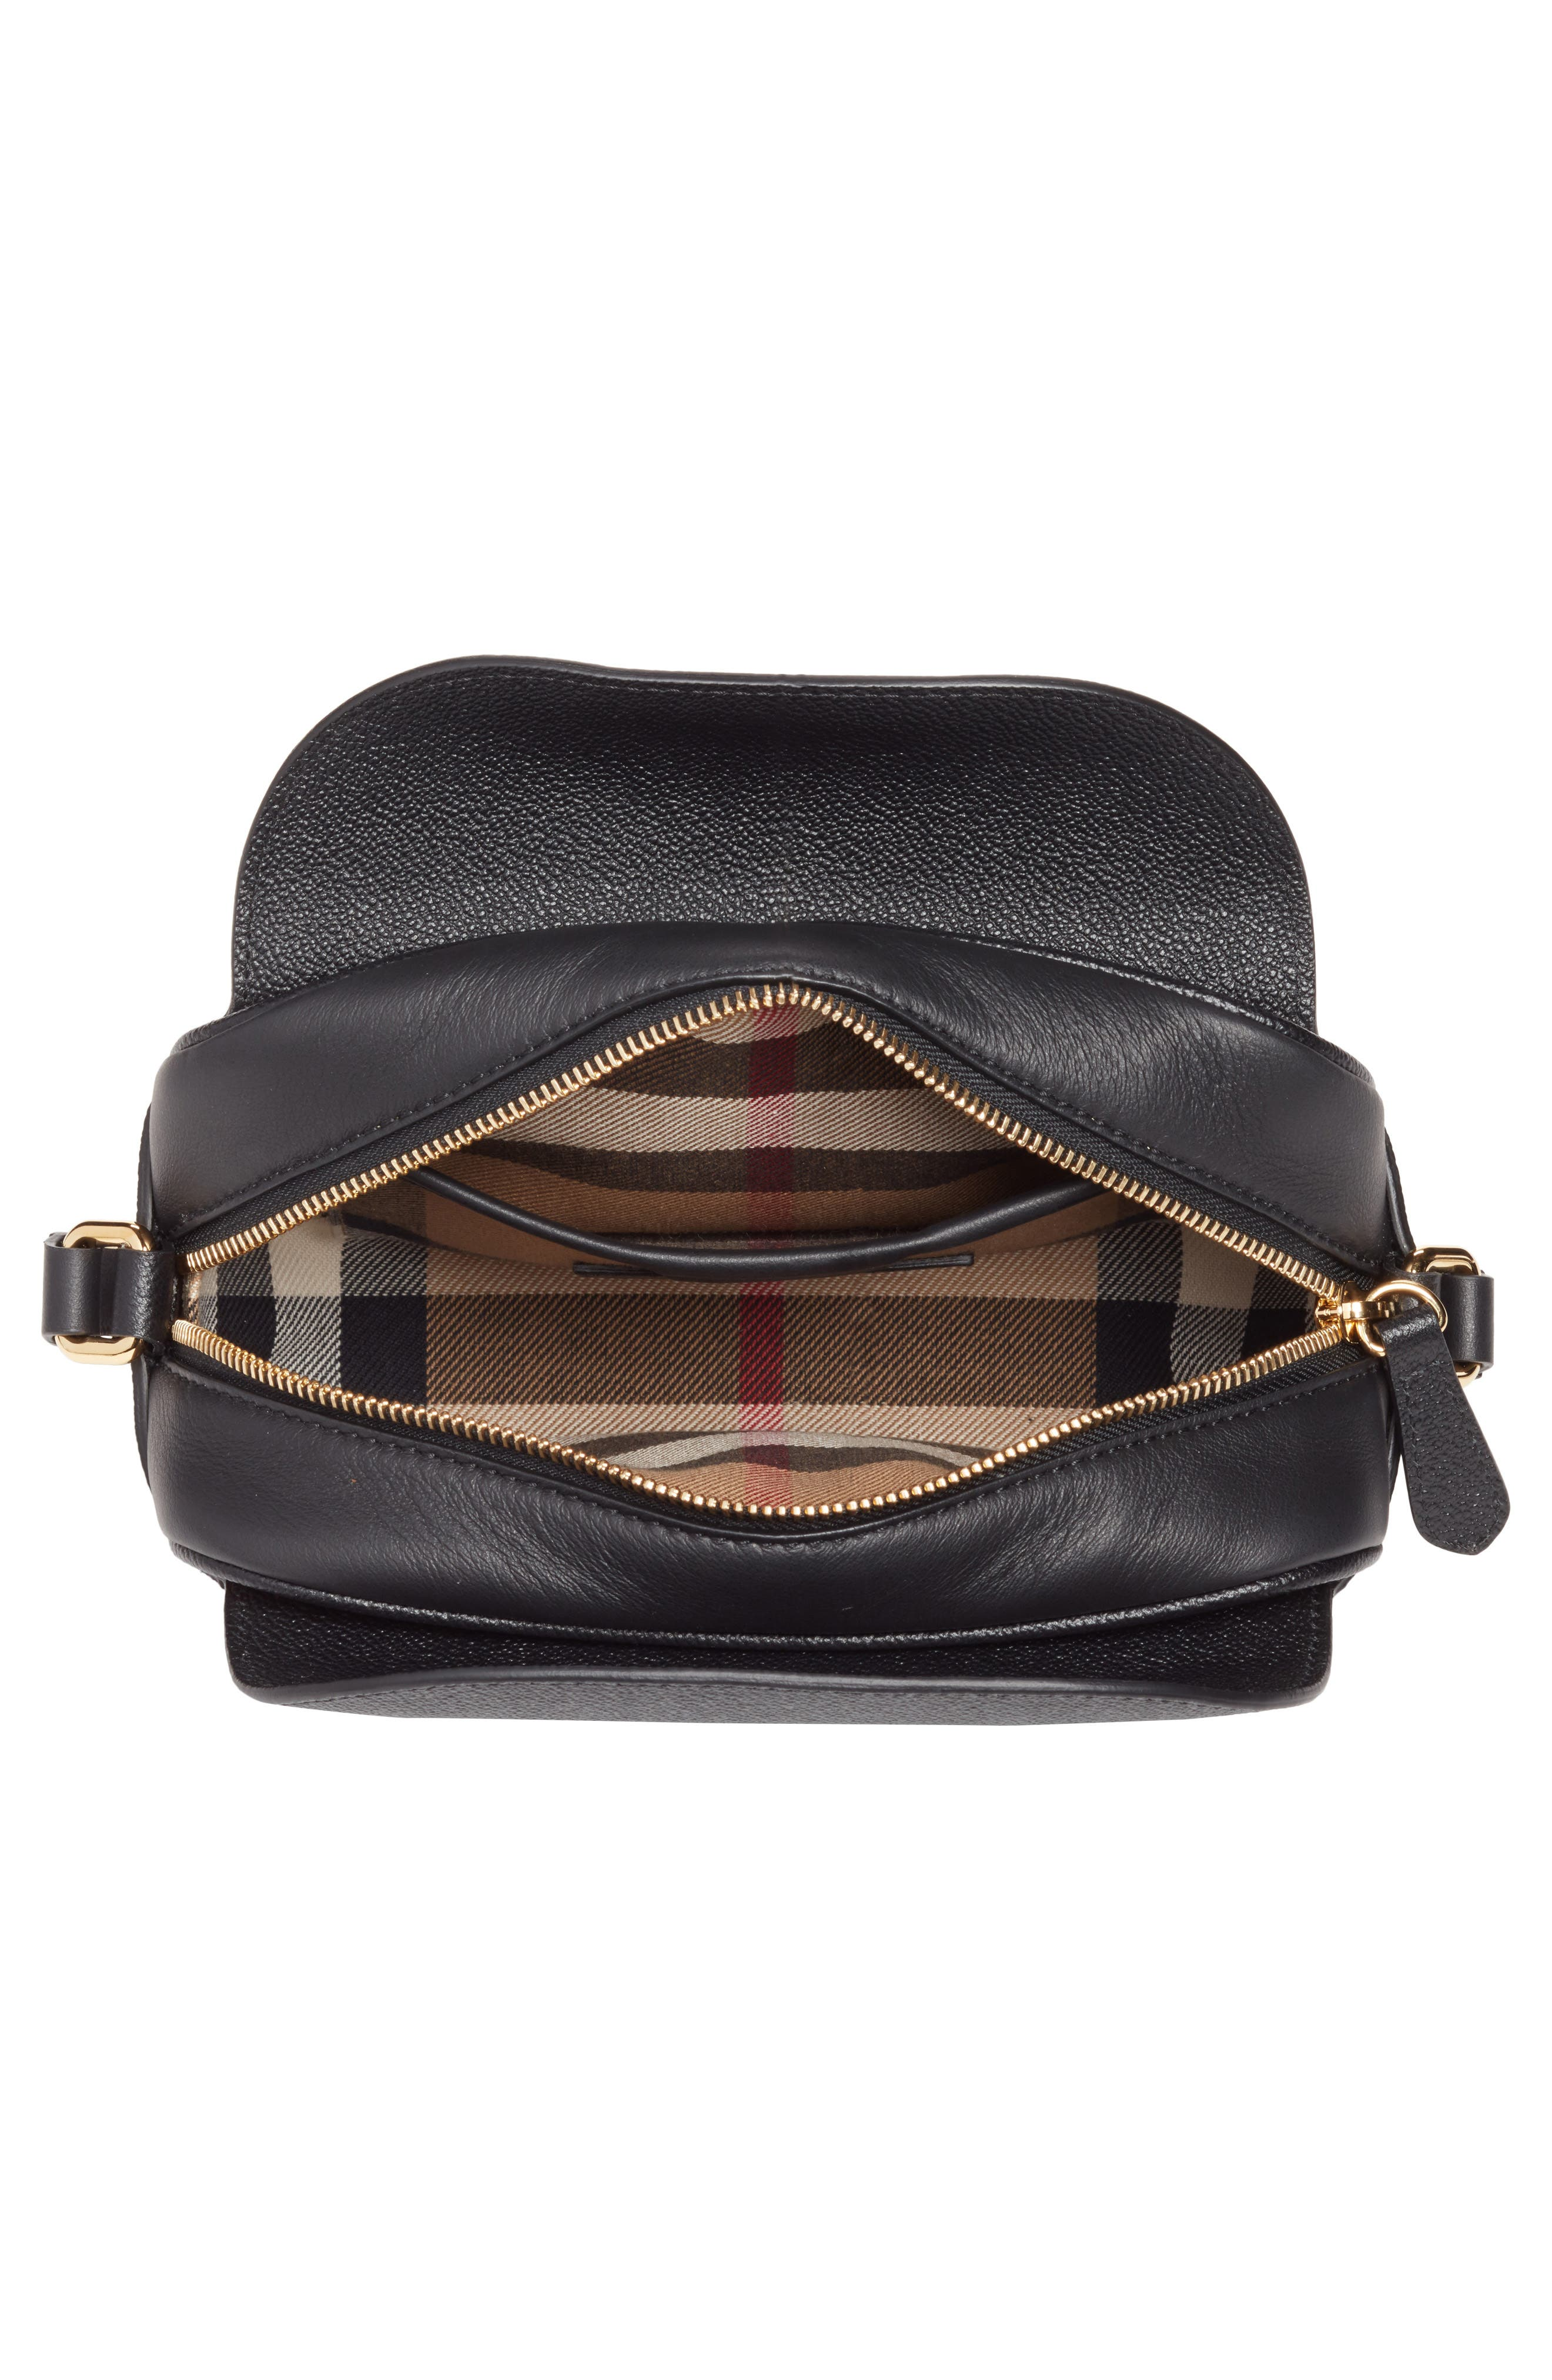 Small Buckle Leather Crossbody Bag,                             Alternate thumbnail 3, color,                             001